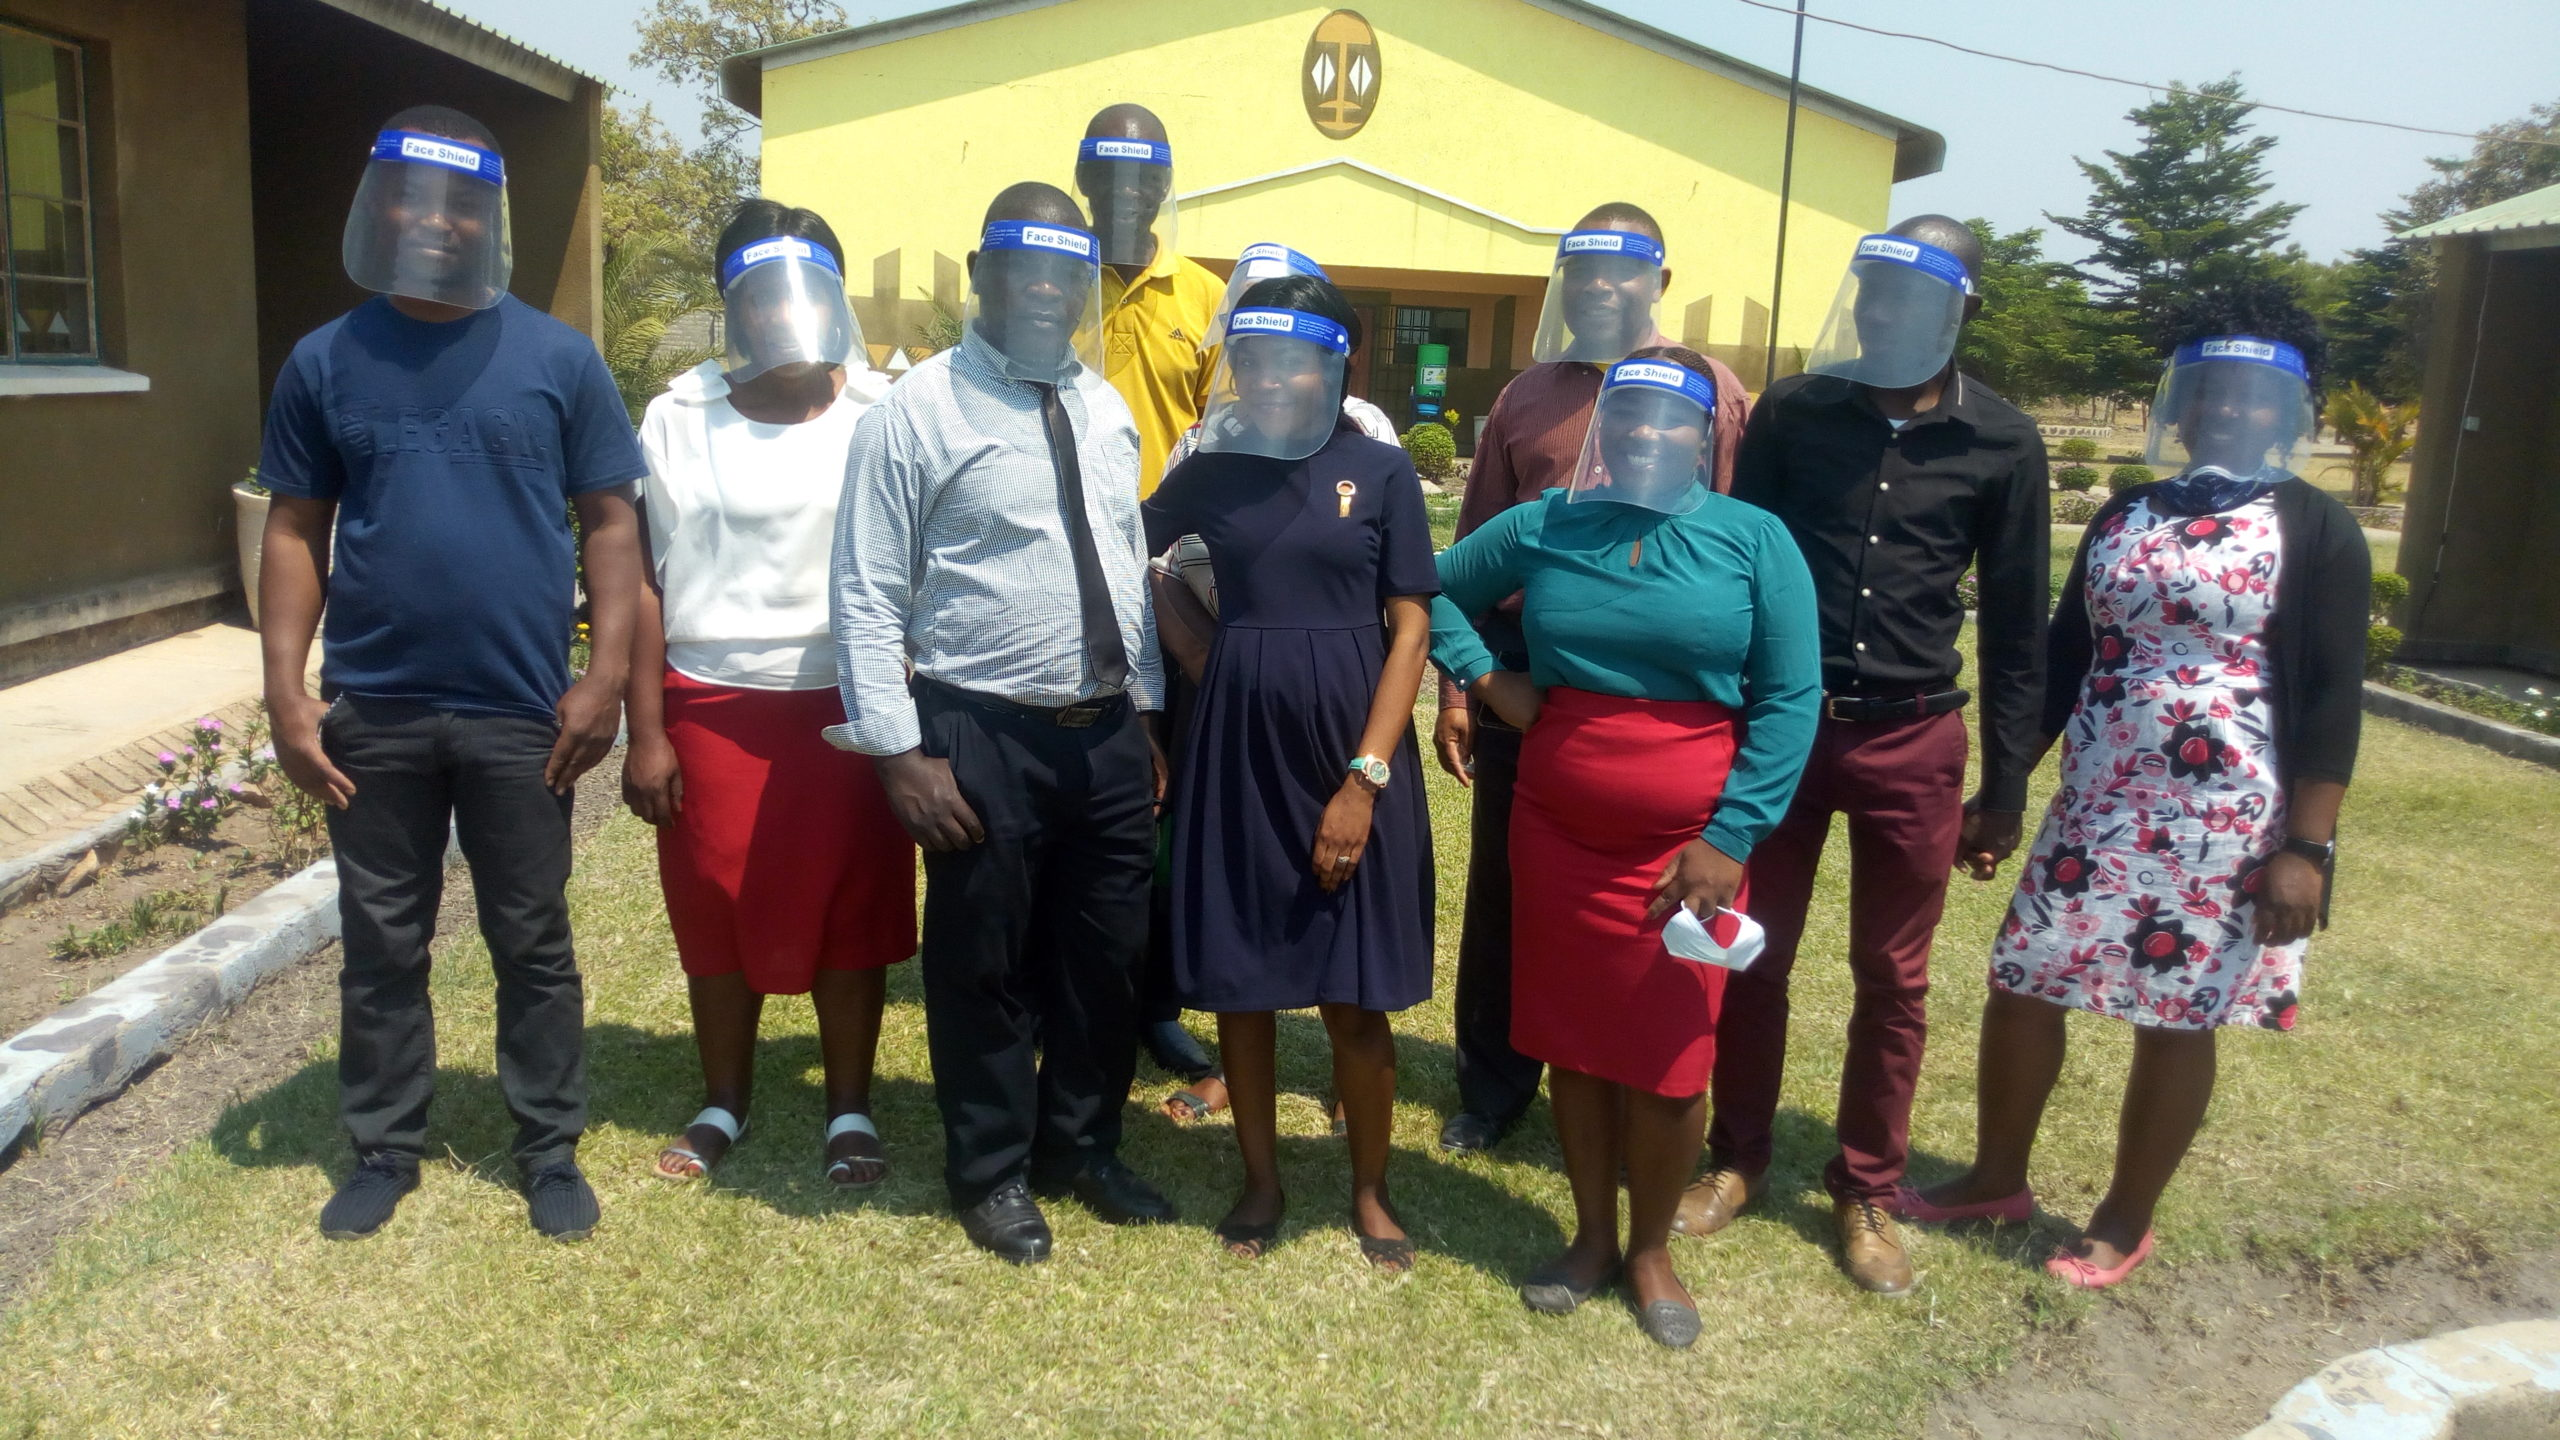 The provision of face shields meant that educators can talk freely to learners while maintaining safety standards